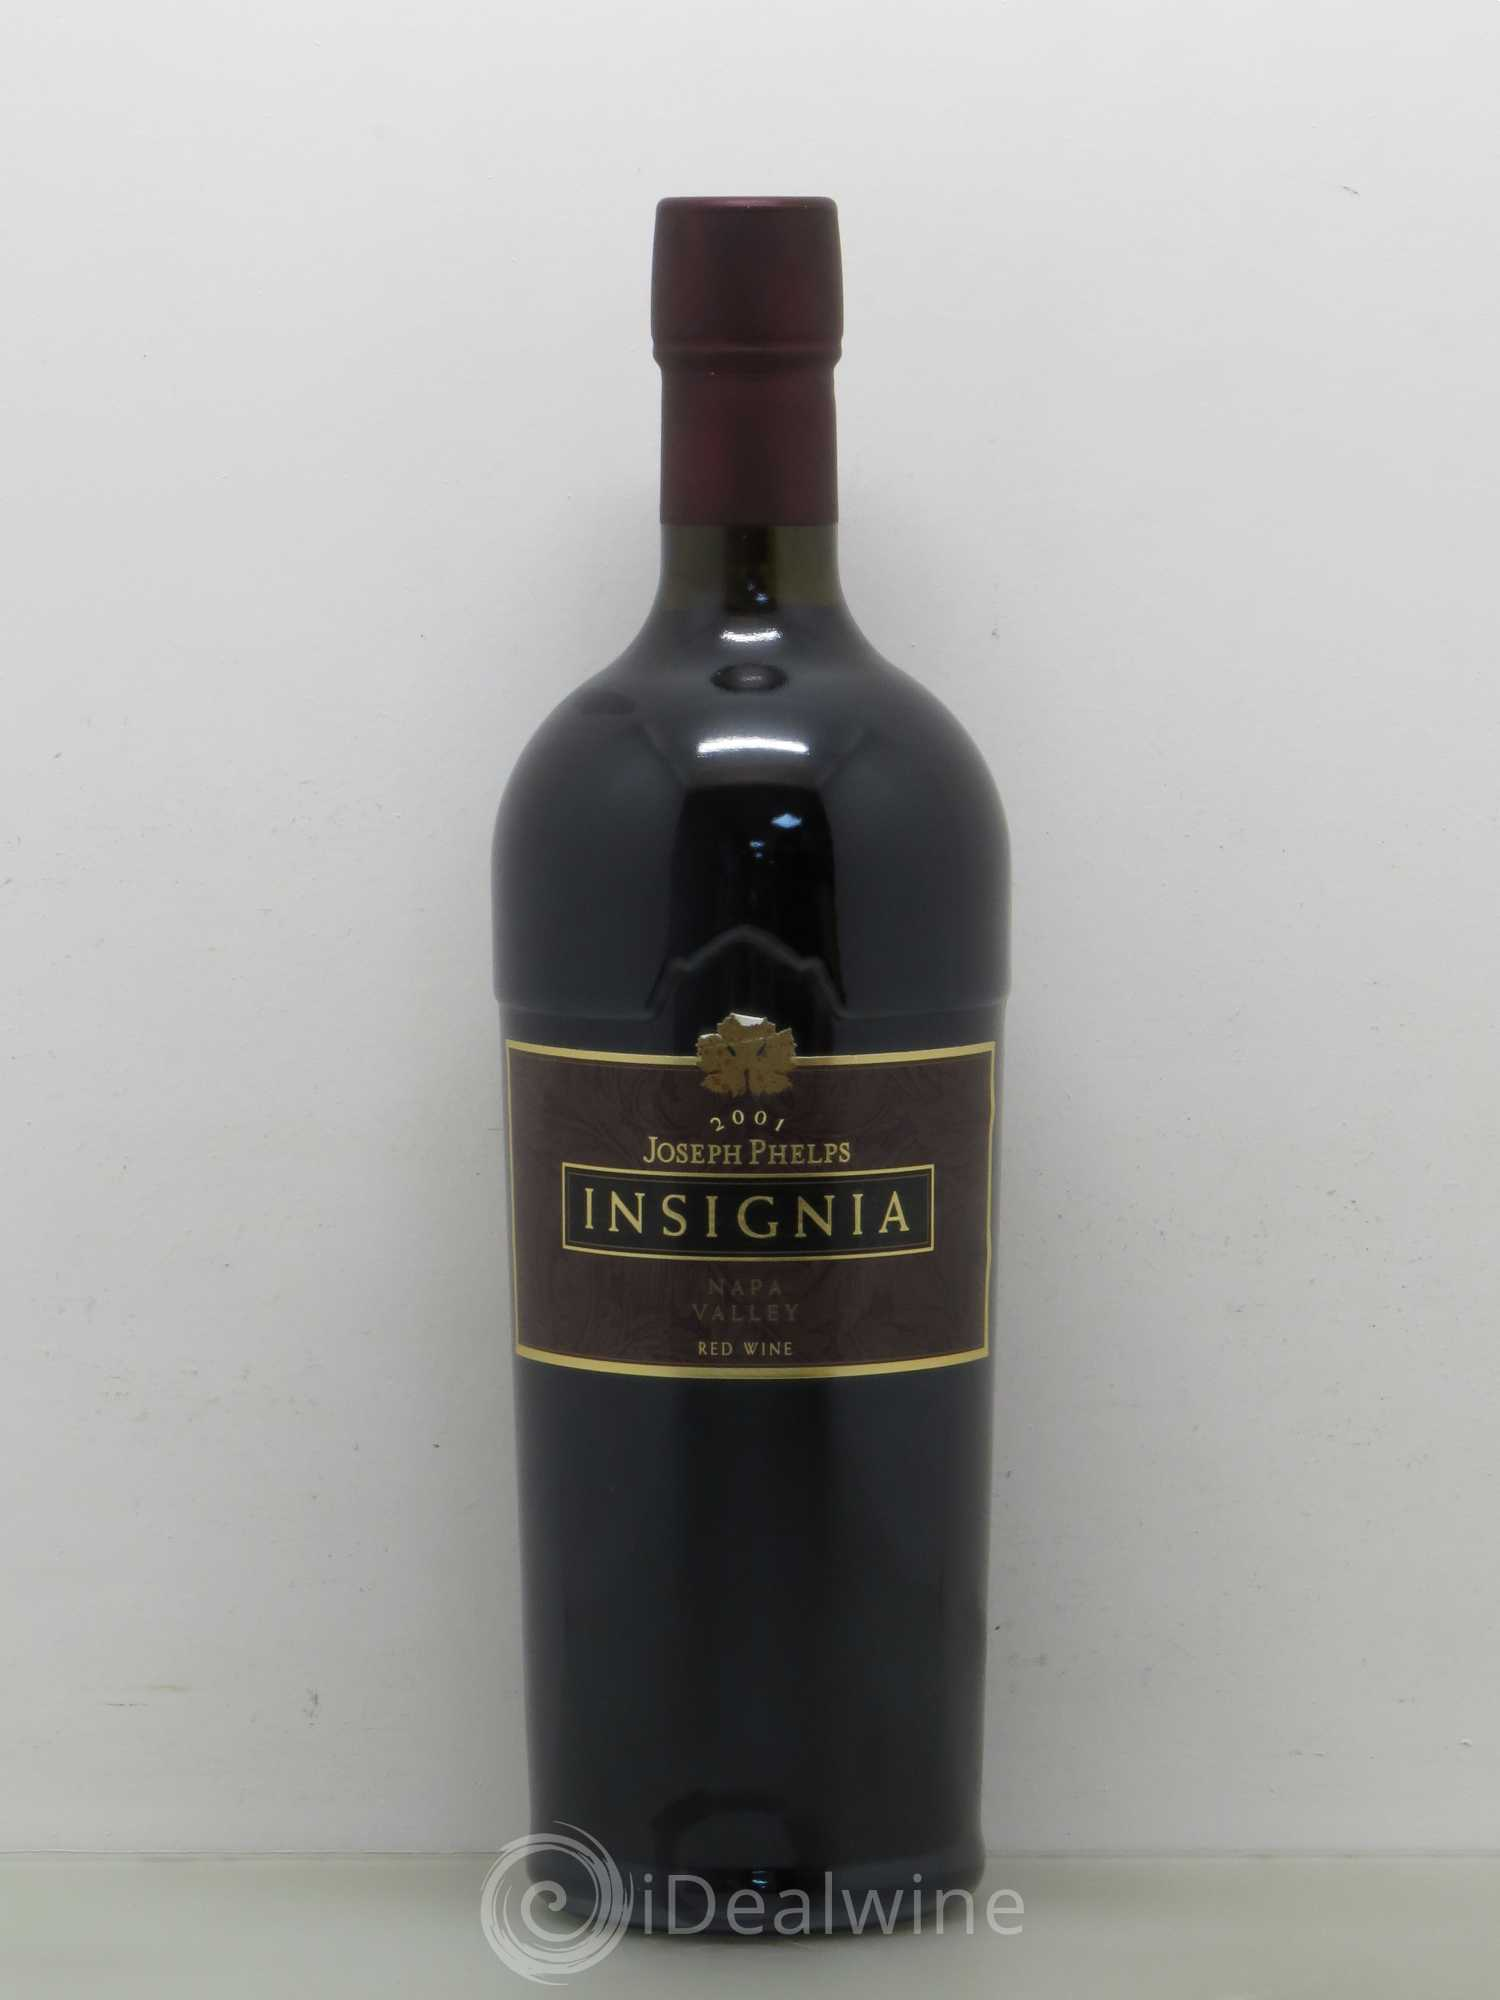 Santa-Helena Phelps - Insignia Joseph Phelps Vineyards  2001 - Lot de 1 Bouteille